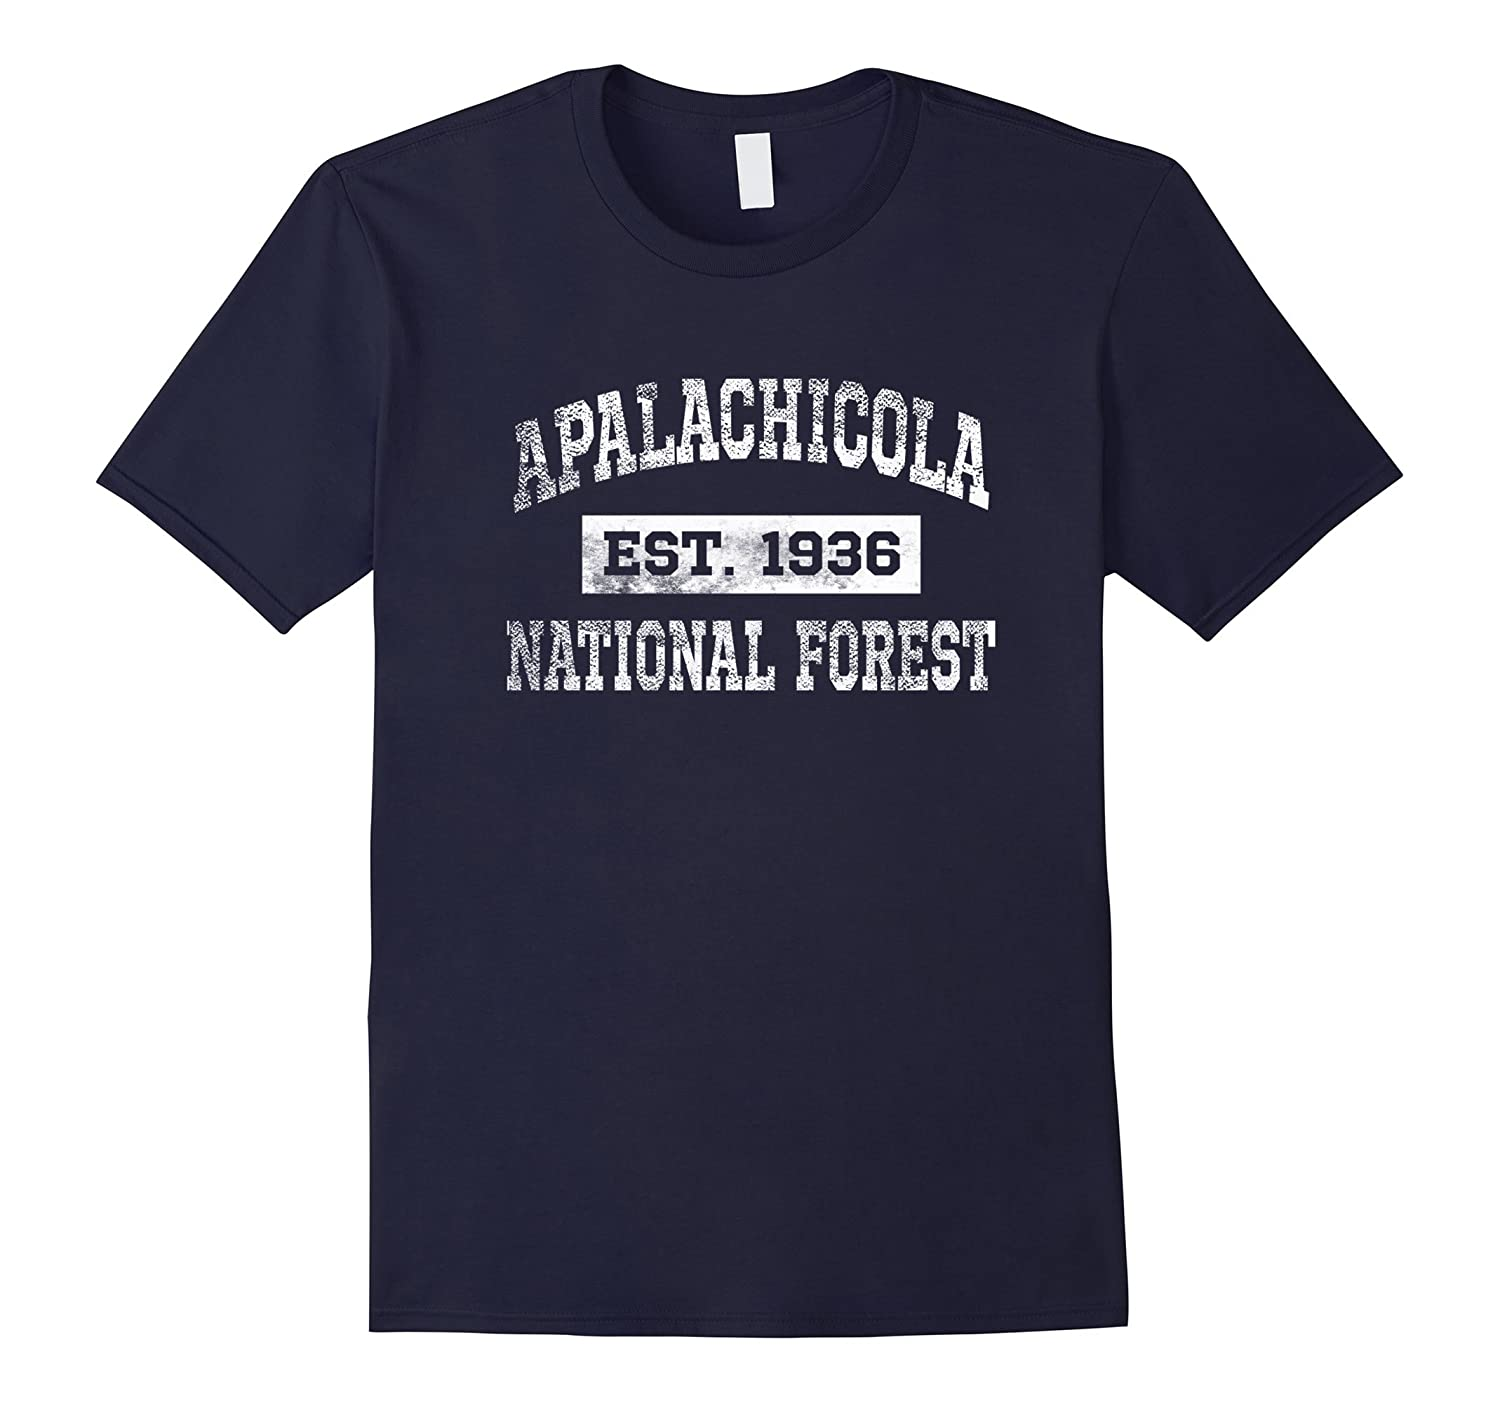 Apalachicola National Forest T Shirt Est 1936 Distressed-TH